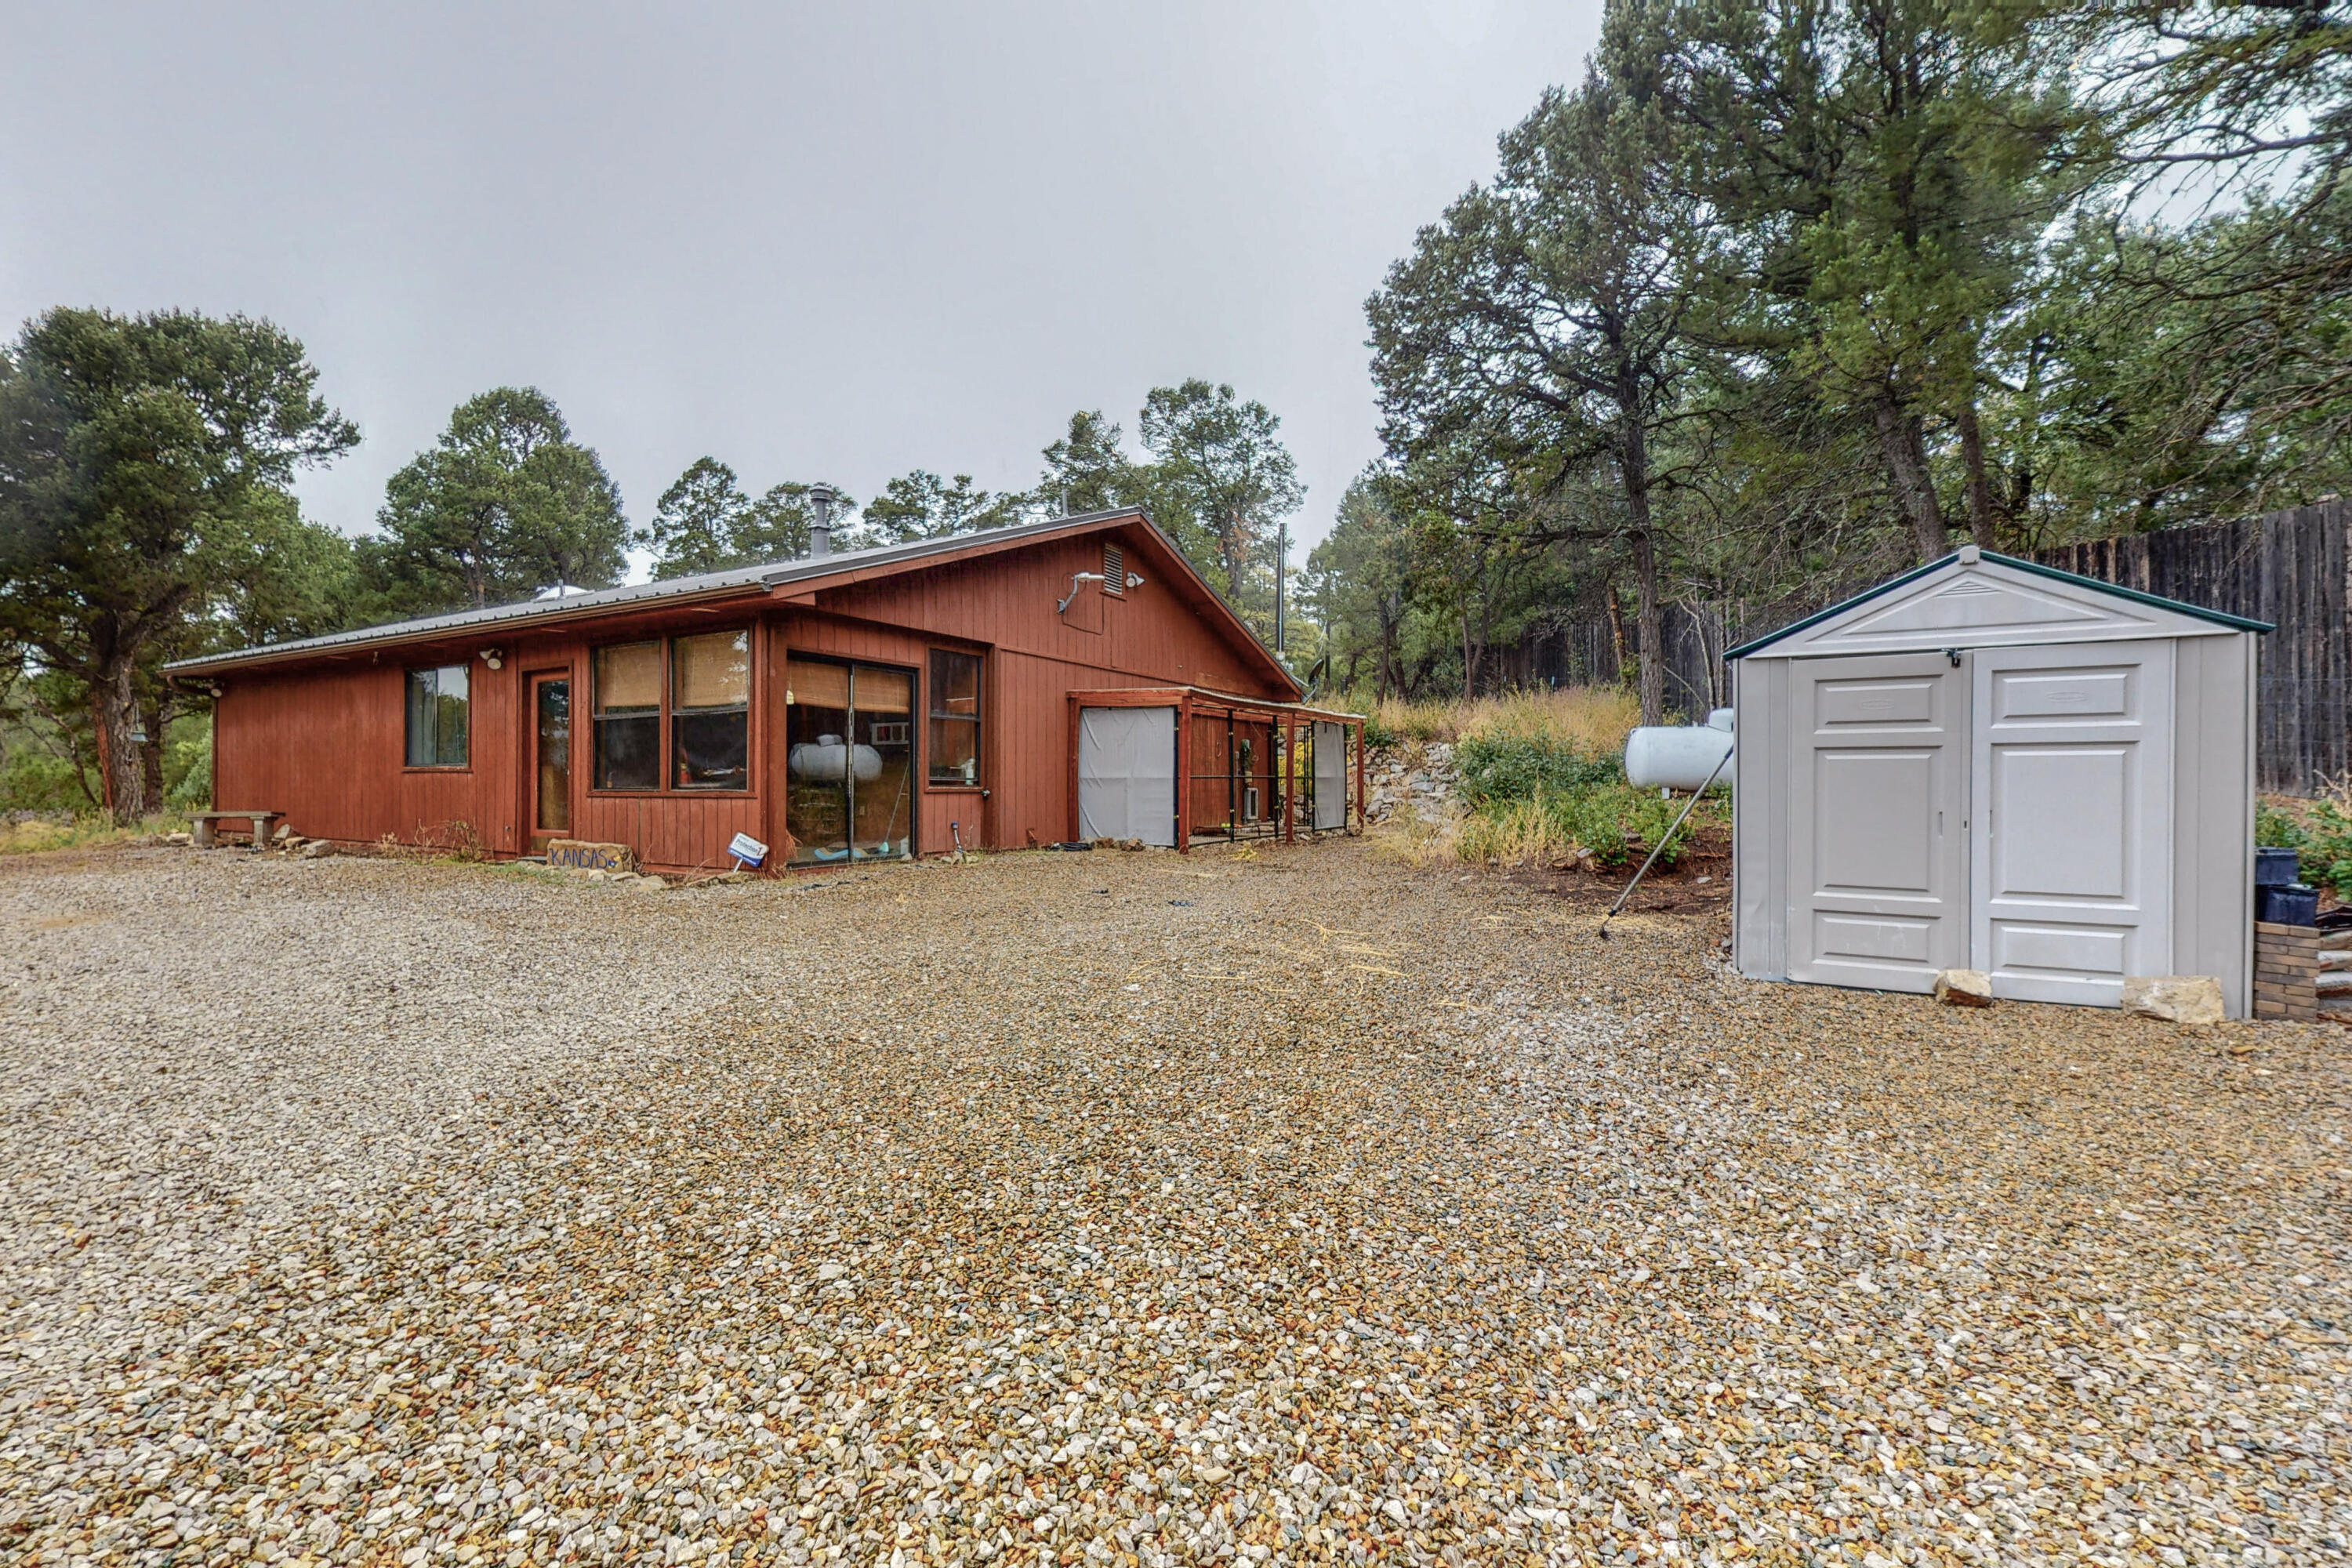 Looking for a rural living with good access to ABQ.  Welcome home to this quiet single level 3 bedroom 2 bath home on a little over 3/4 acre lot.  Furnace, roof, water heater and kitchen appliances all replaced in the last 4 years.